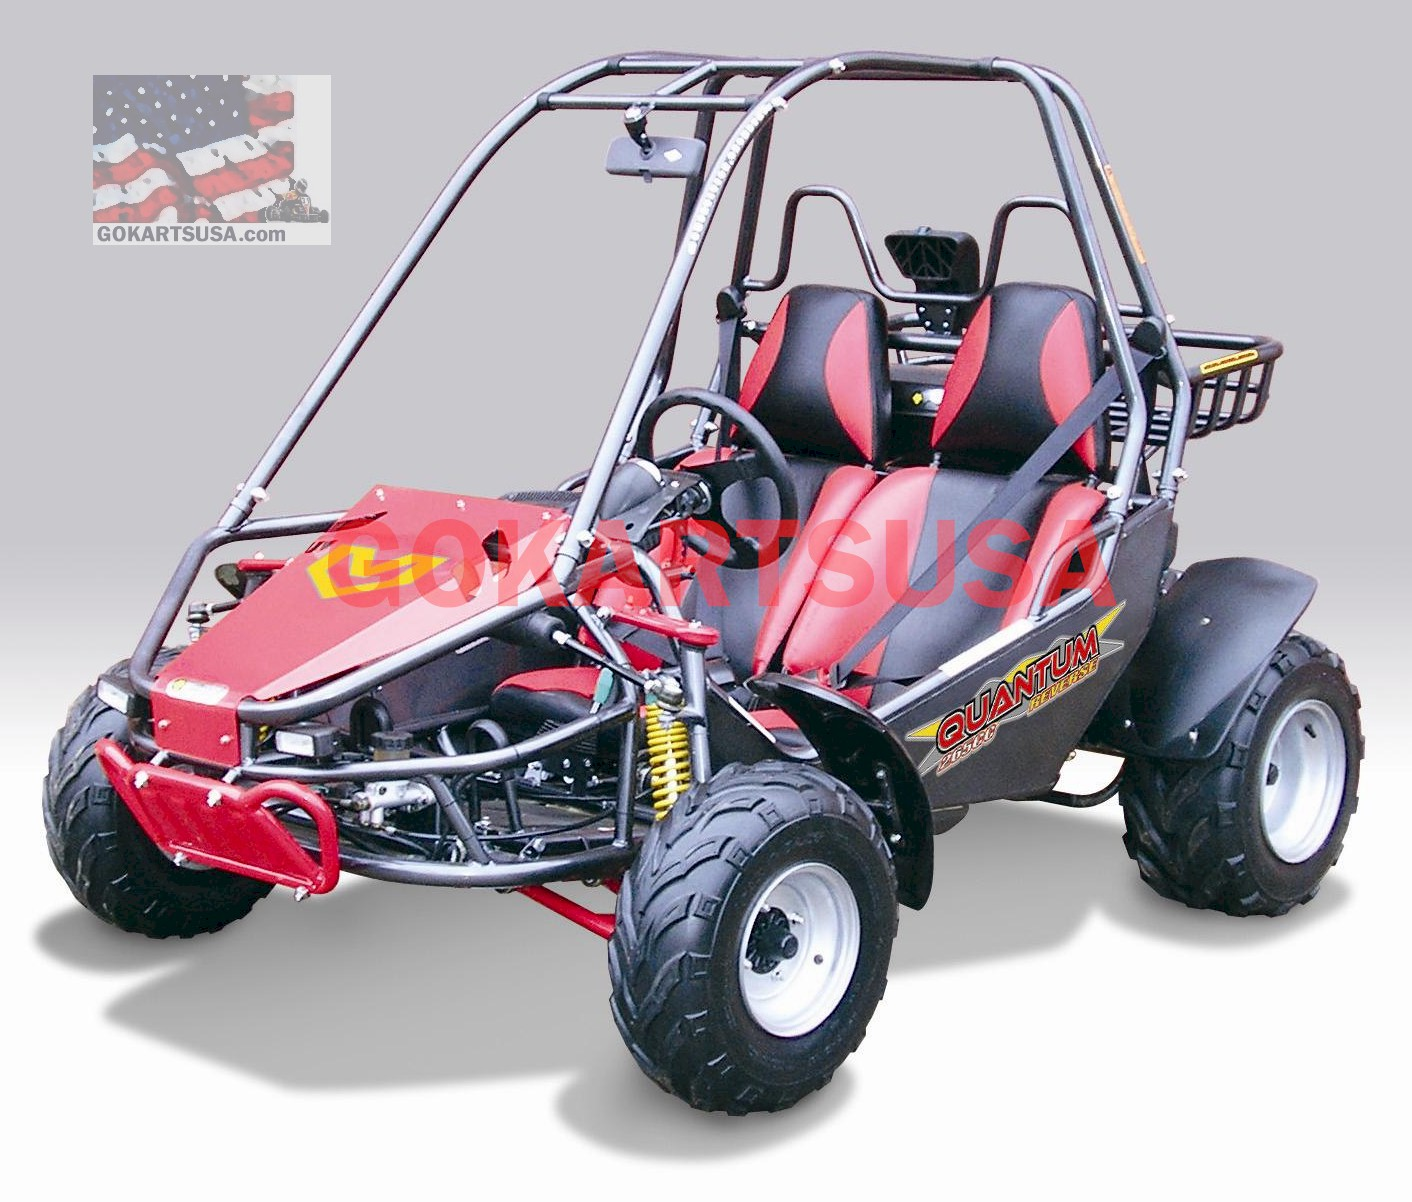 Quantum 150cc Dune Buggy by American Sportworks